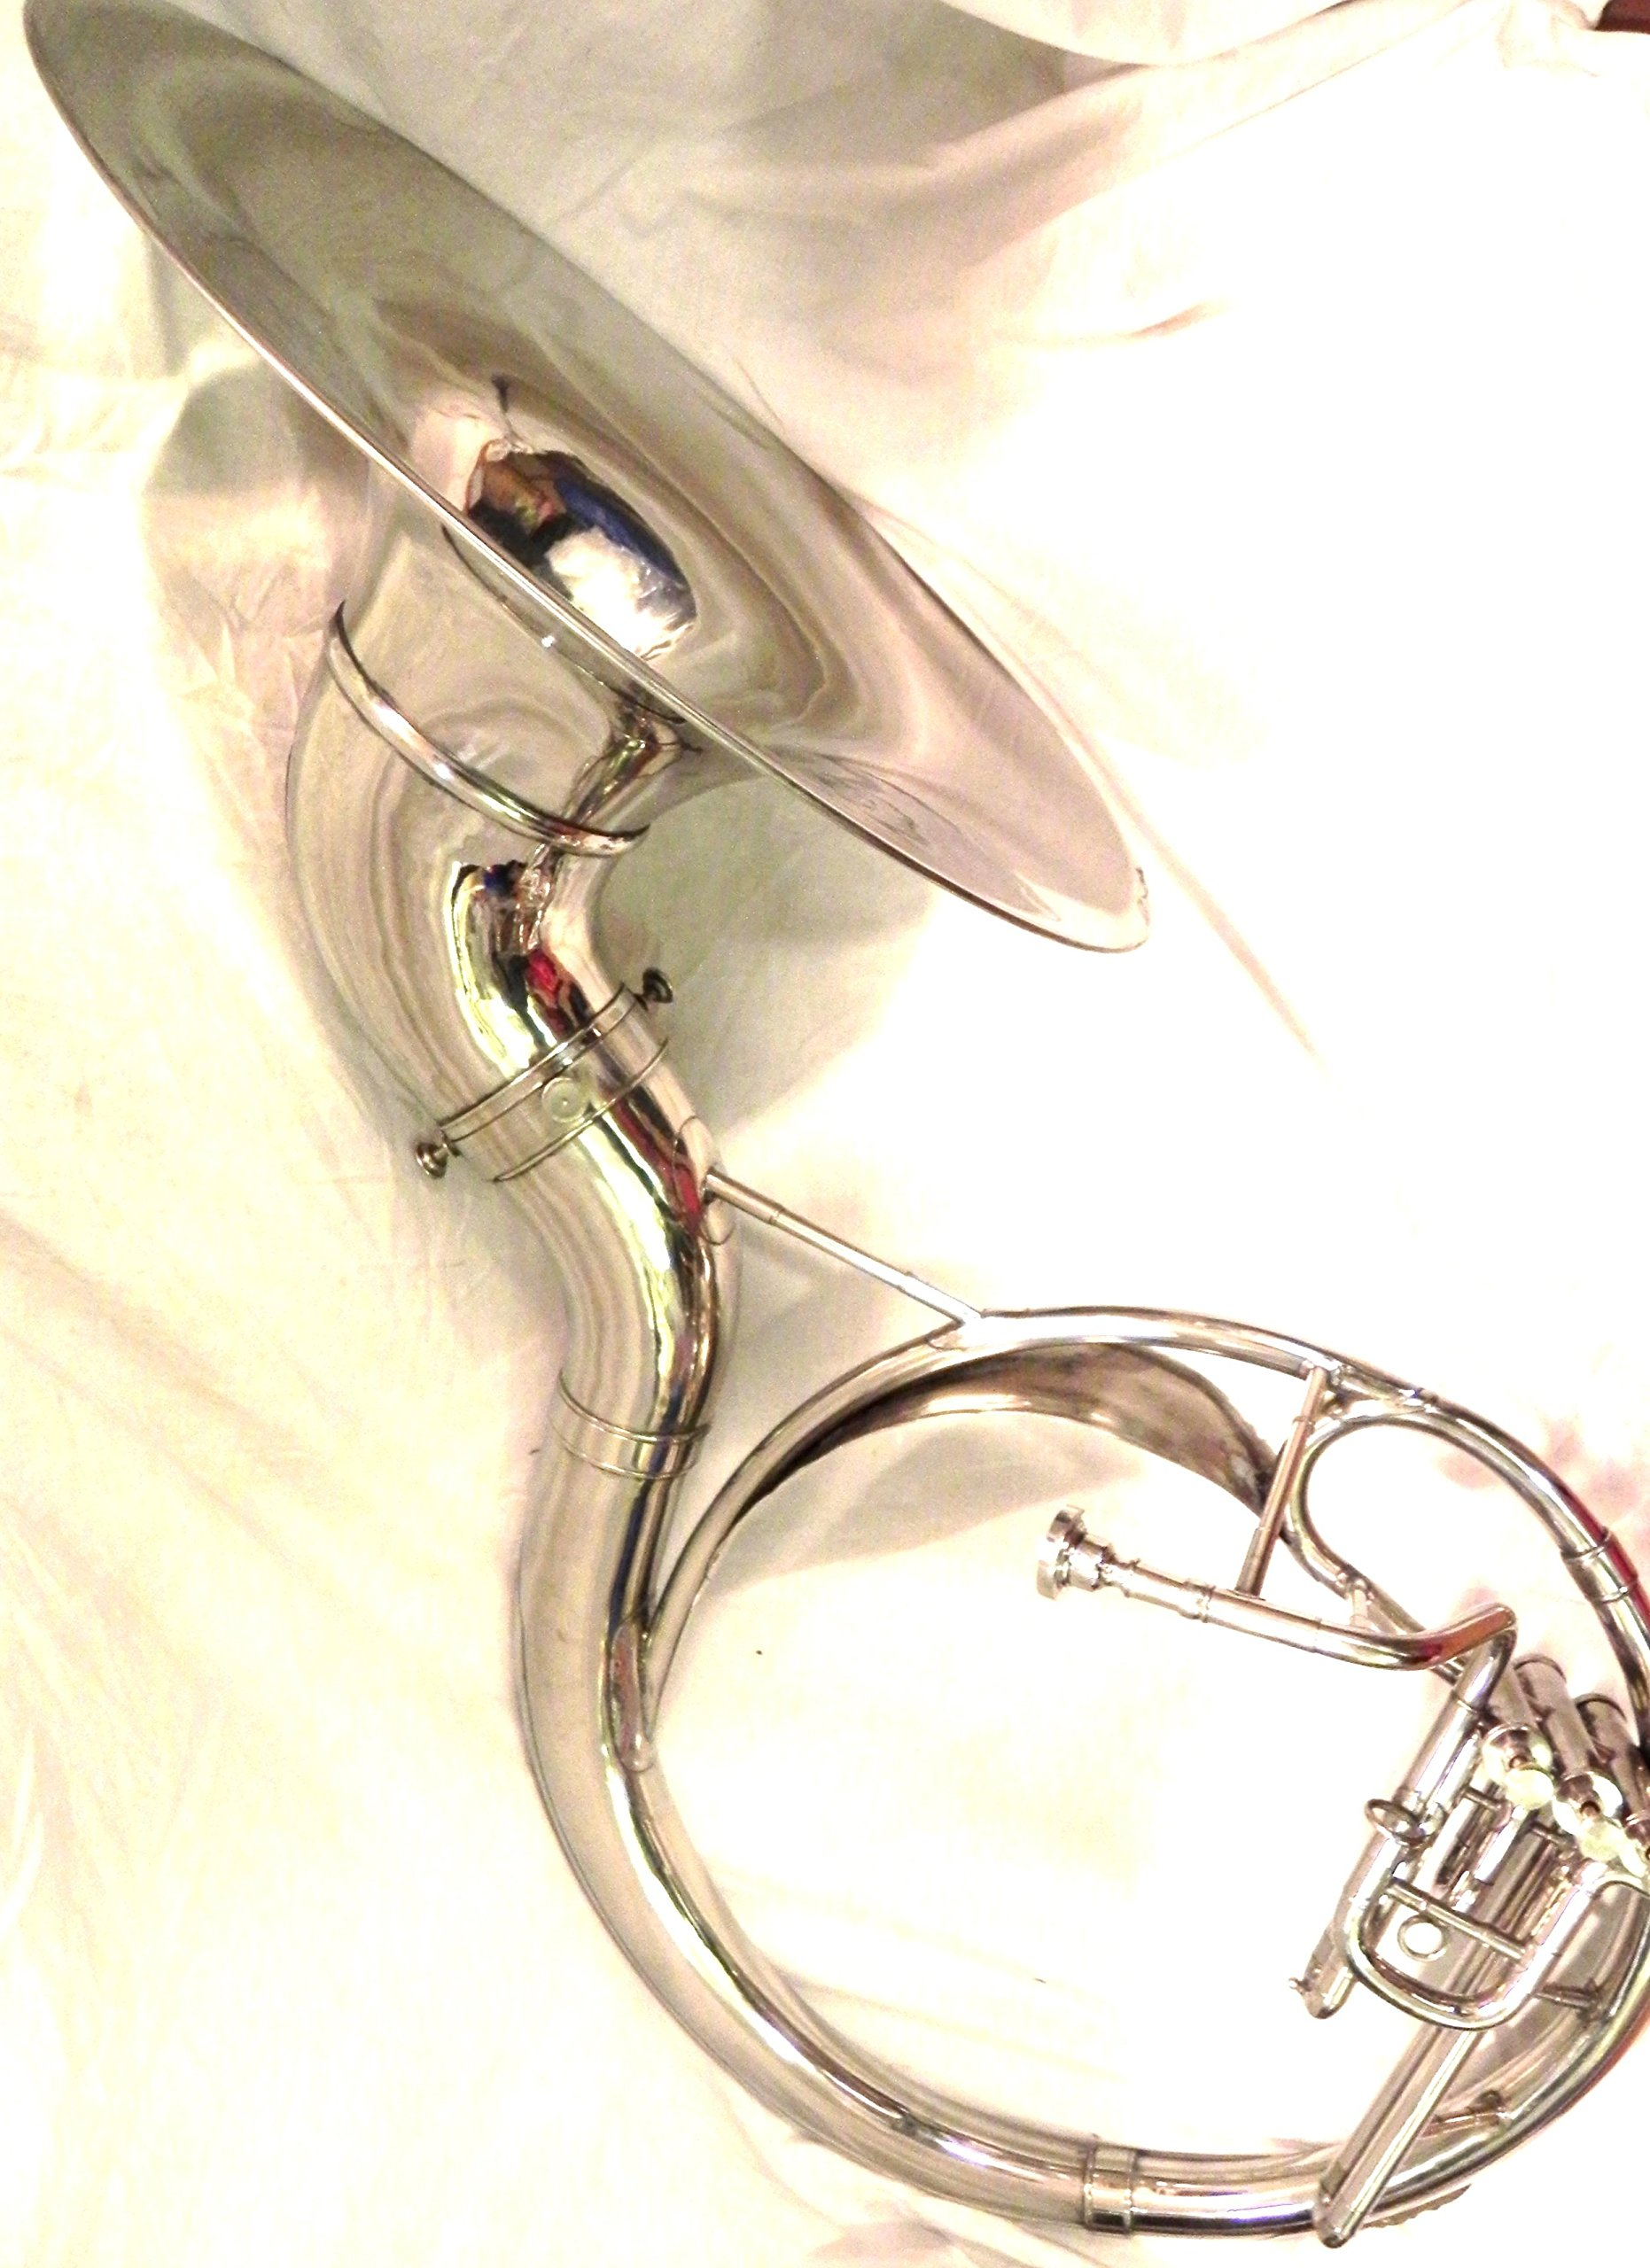 INDIAN HANDMADE CHROME FINISH 22'' SOUSAPHONE BRASS MADE TUBA WITH MOUTH PIECE / CARRY BAG by IM